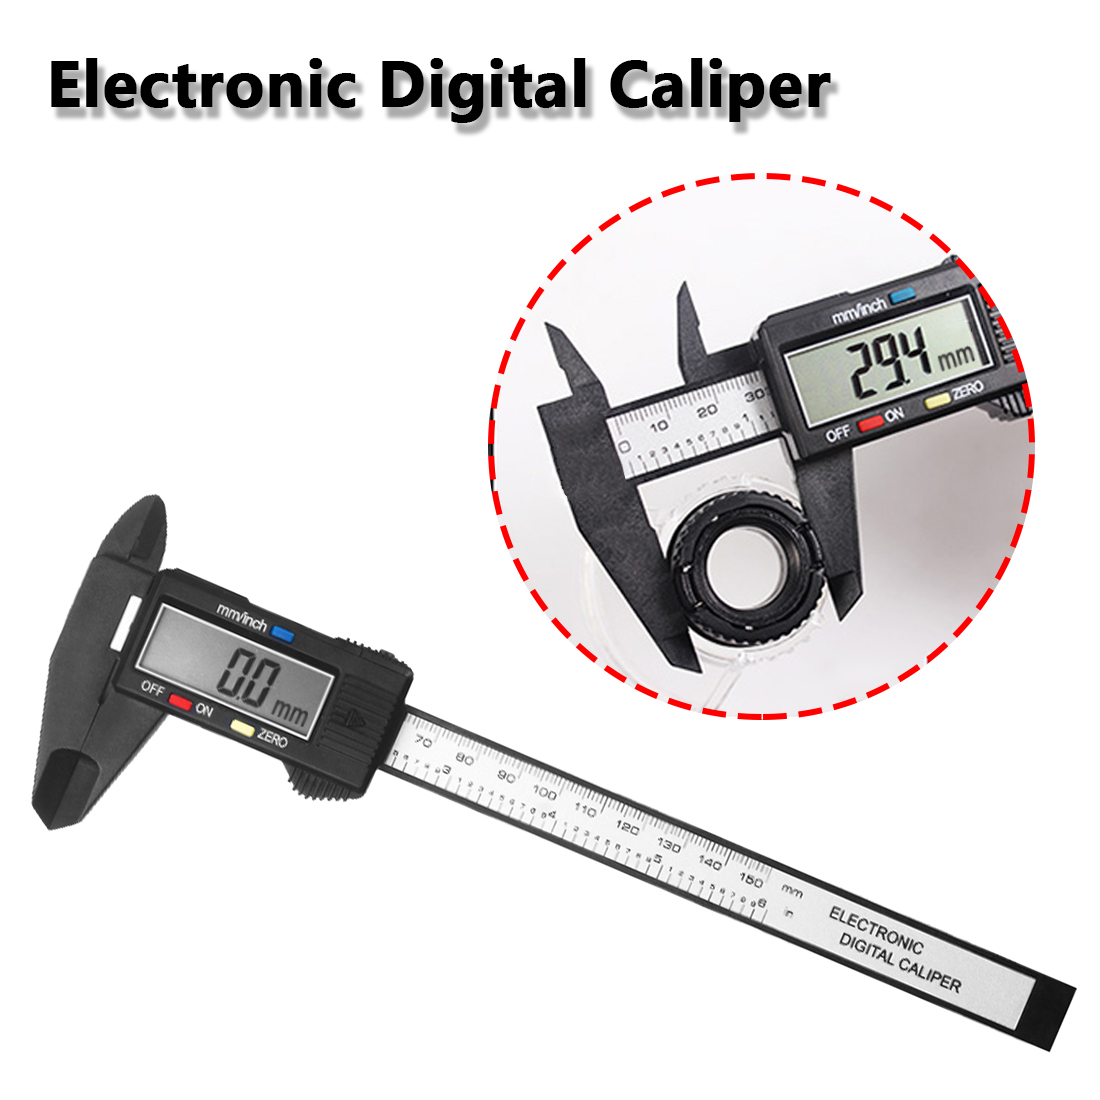 Carbon Fiber LCD Digital Electronic Vernier Caliper Gauge Micrometer Measuring Tool Ruler Digital Calipers 150mm 6inch фен remington d3190